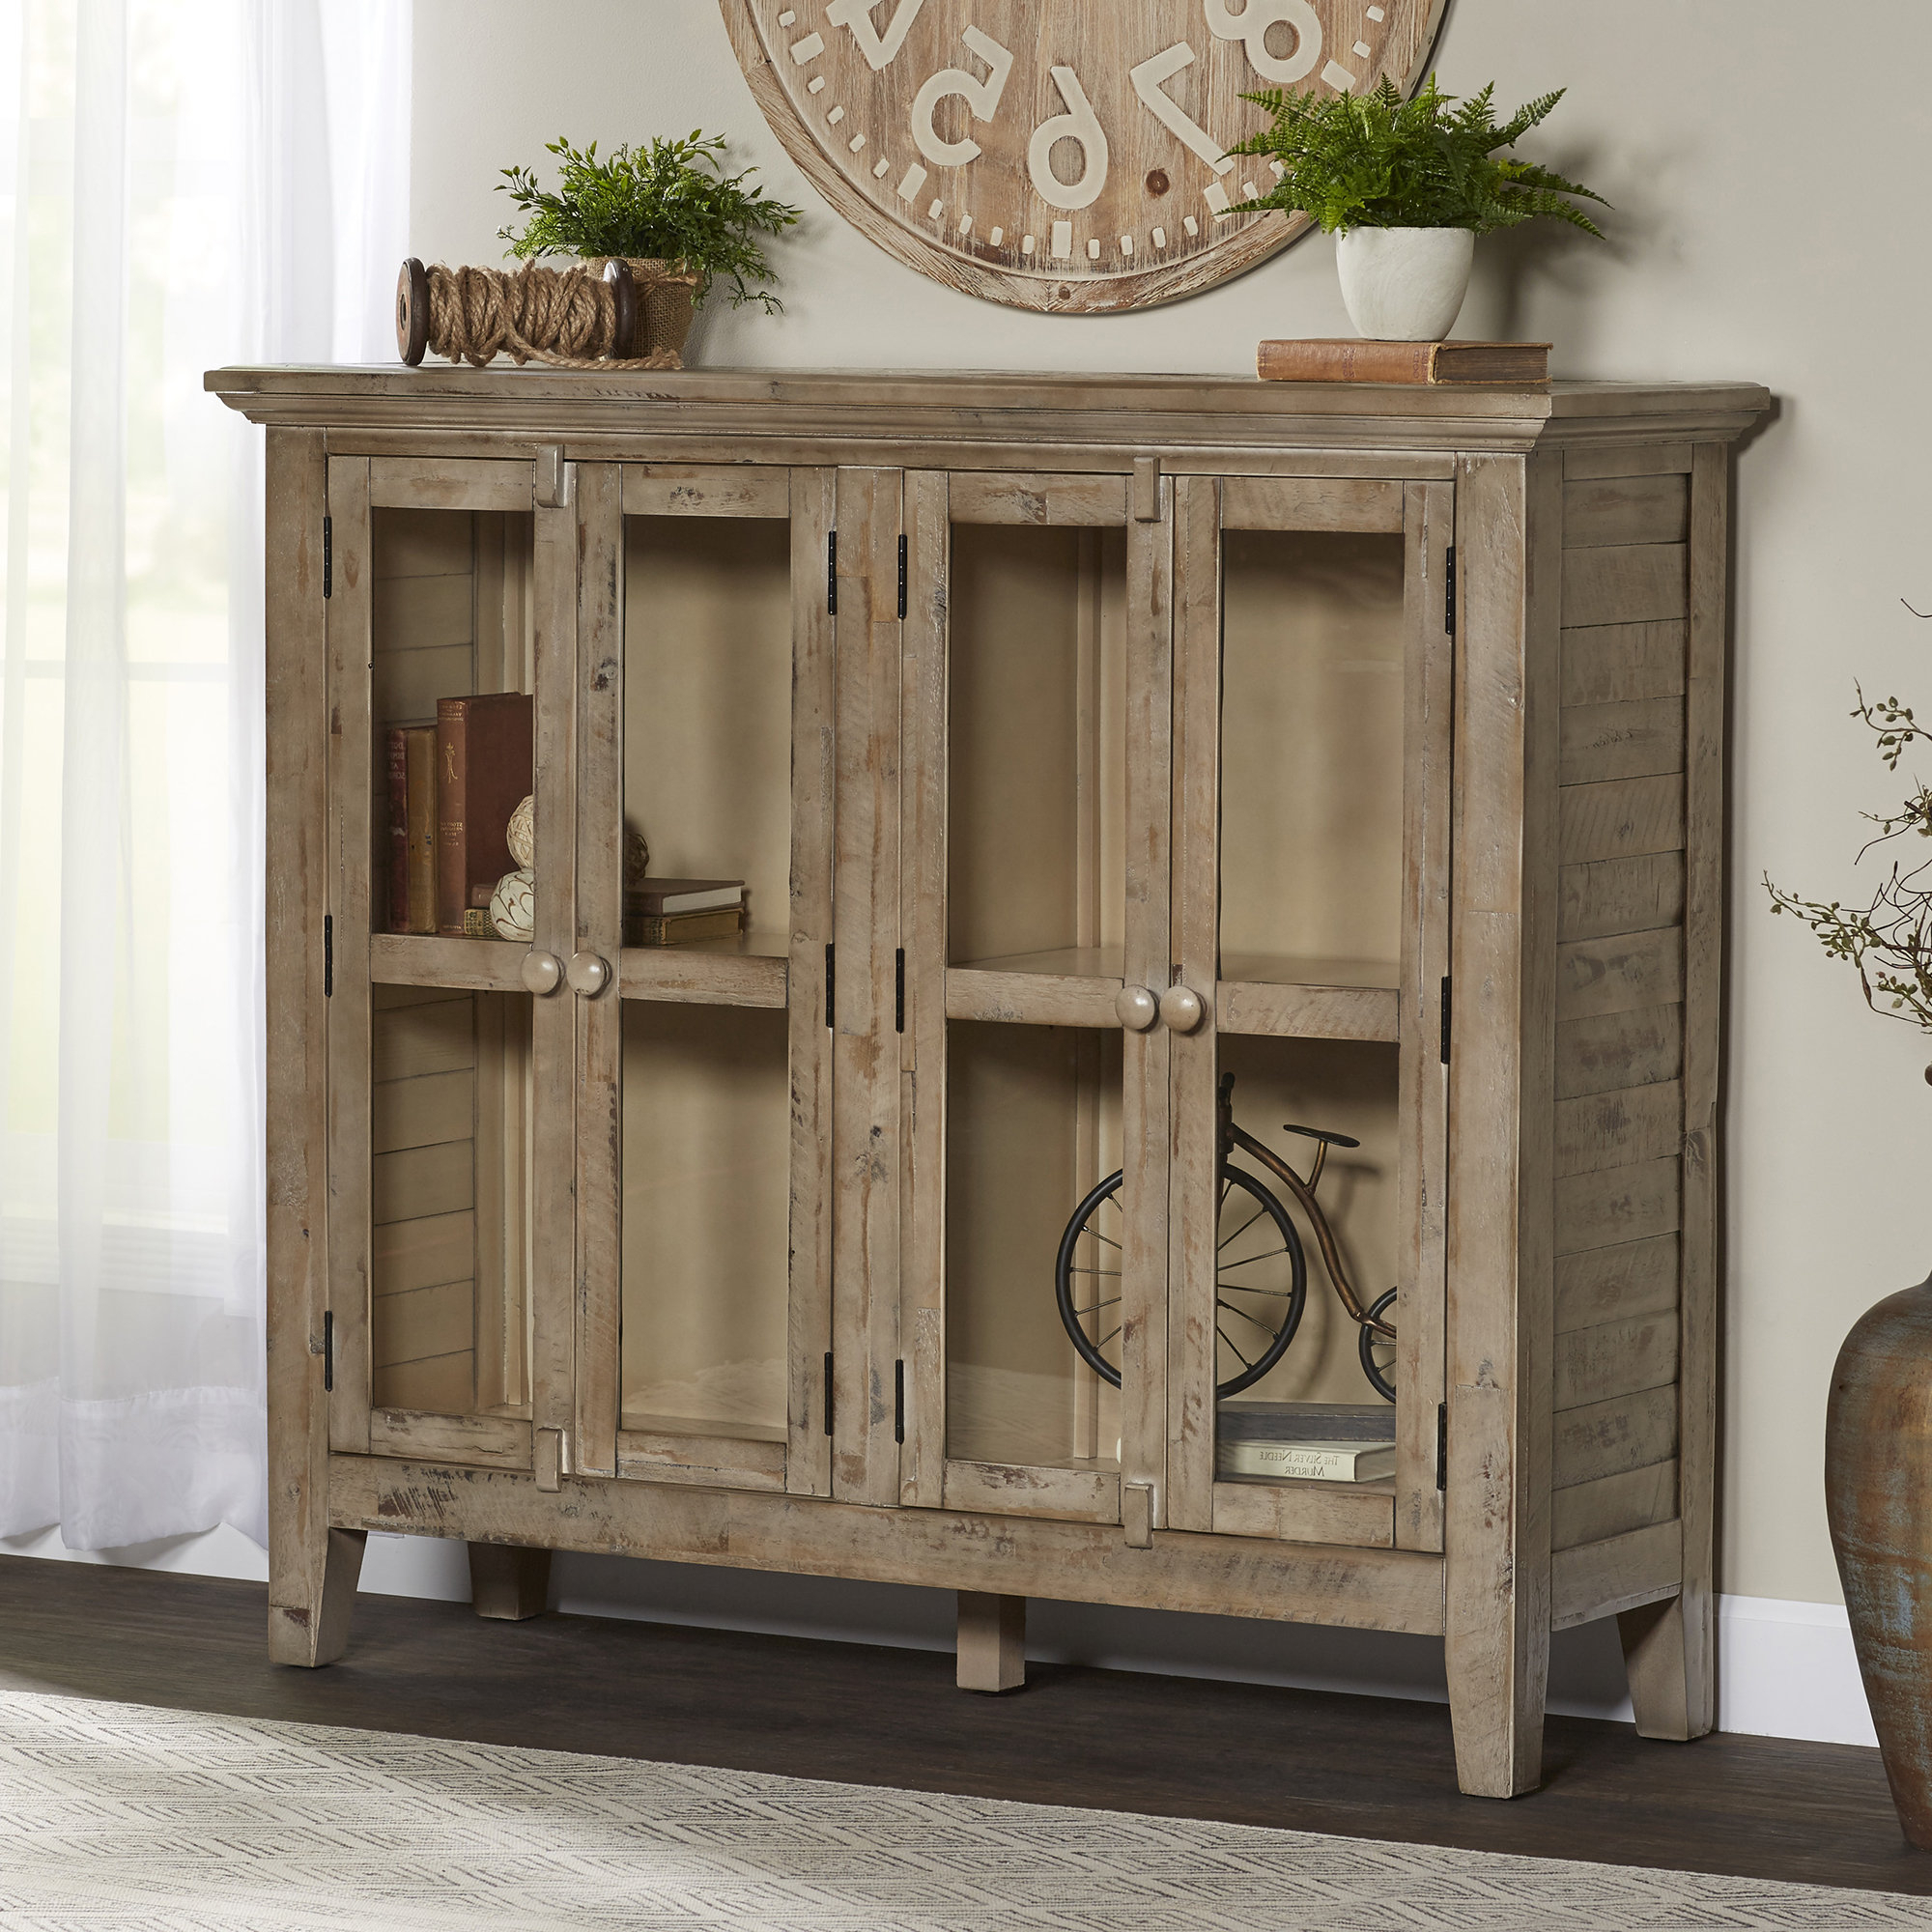 Eau Claire 4 Door Accent Cabinet Regarding Eau Claire 6 Door Accent Cabinets (View 6 of 20)